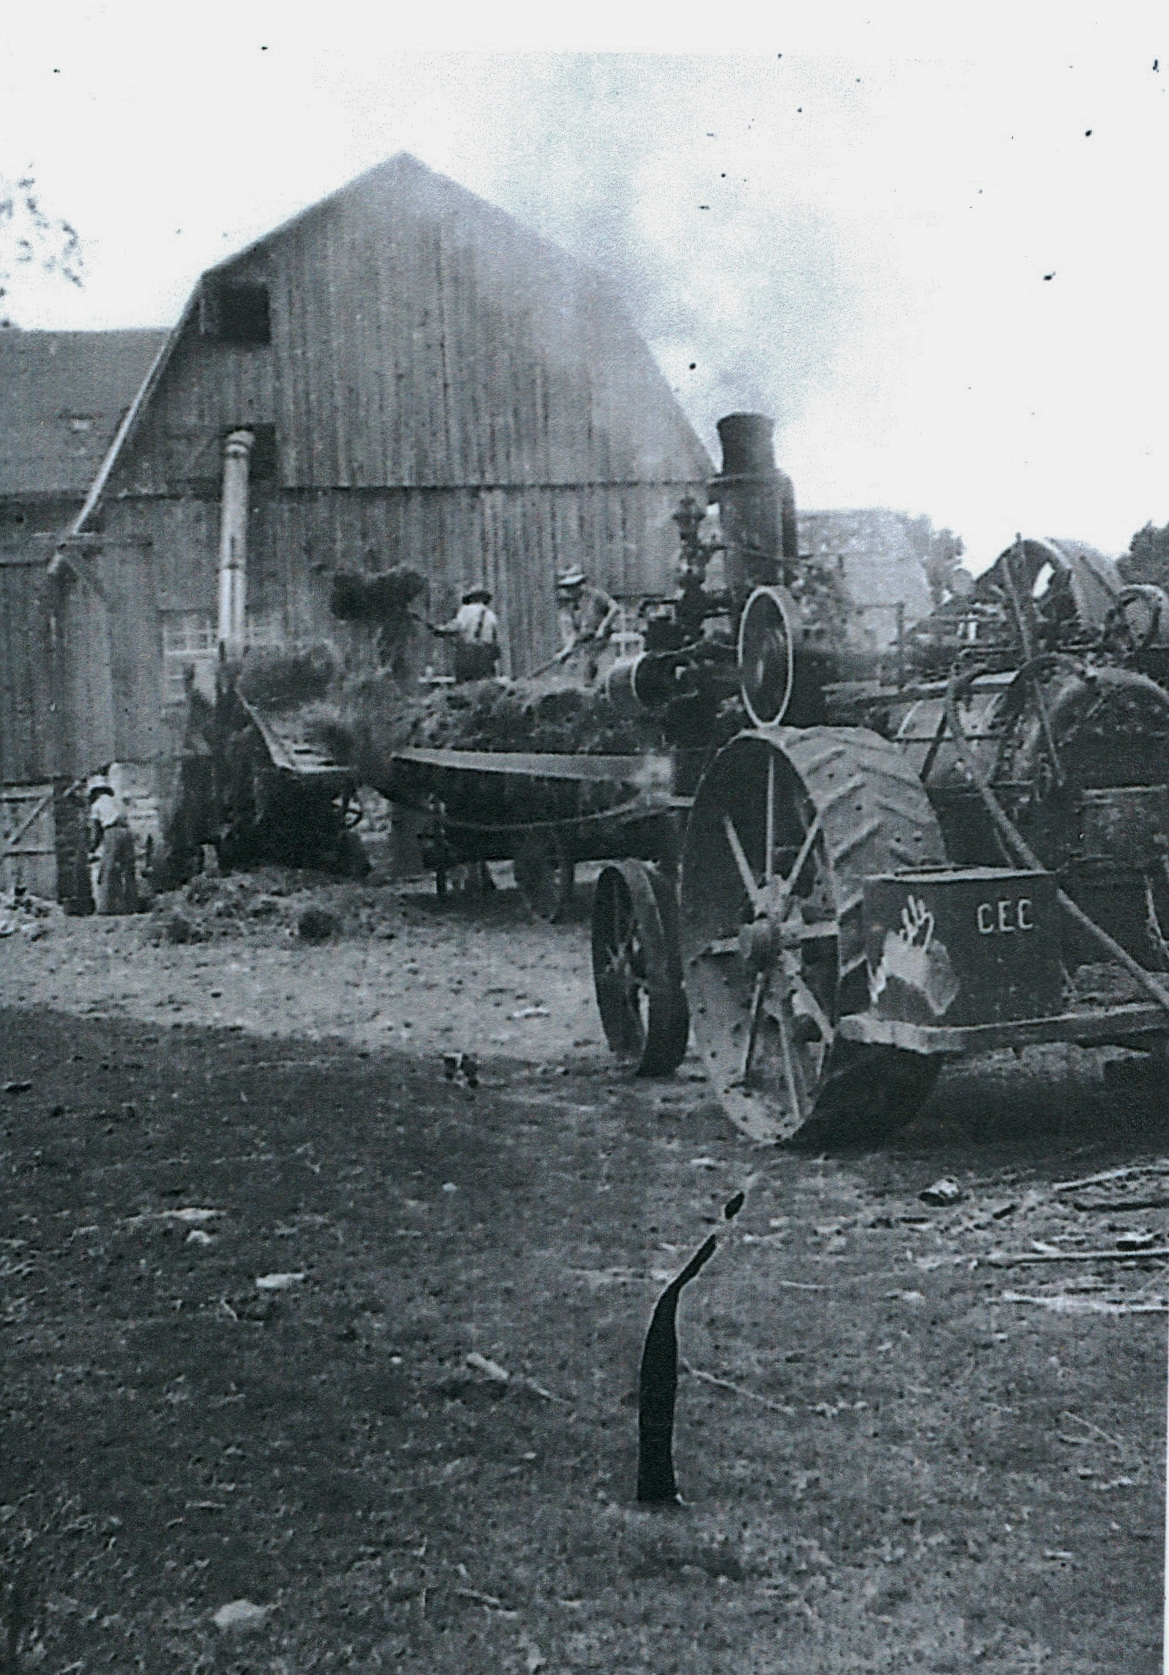 Harry Vansickle & his Threshing Machine & Steam Engine,  east side of Vansickle